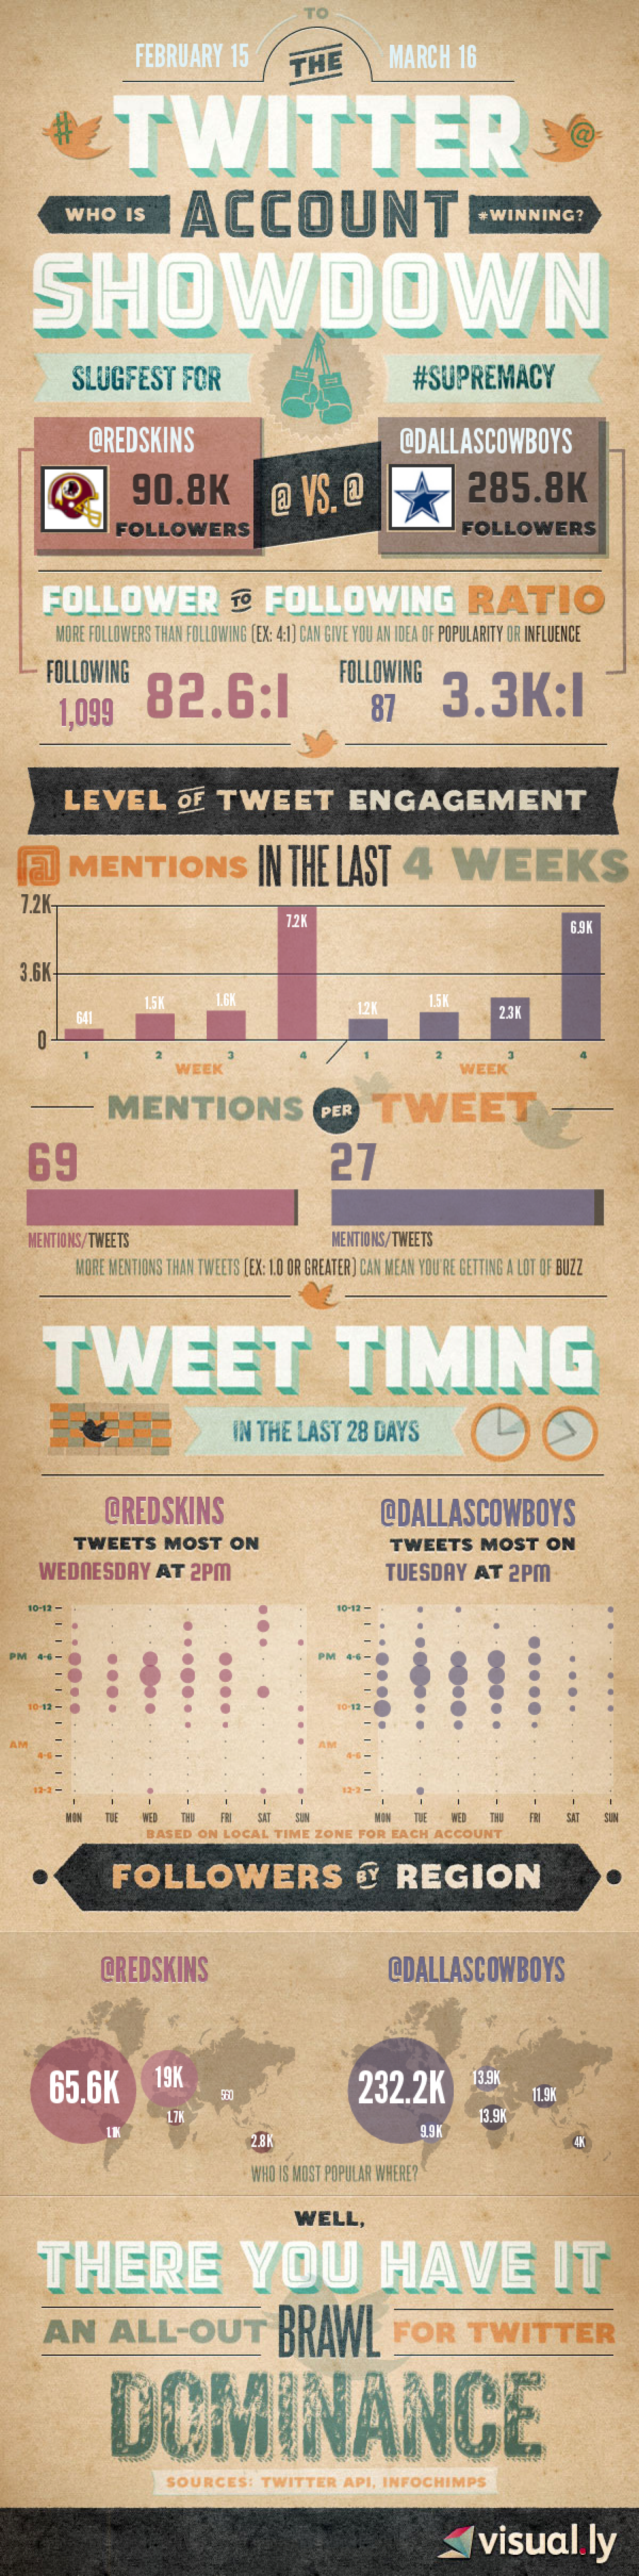 Twitter Slugfest for Supremacy: Redskins vs. Cowboys Infographic